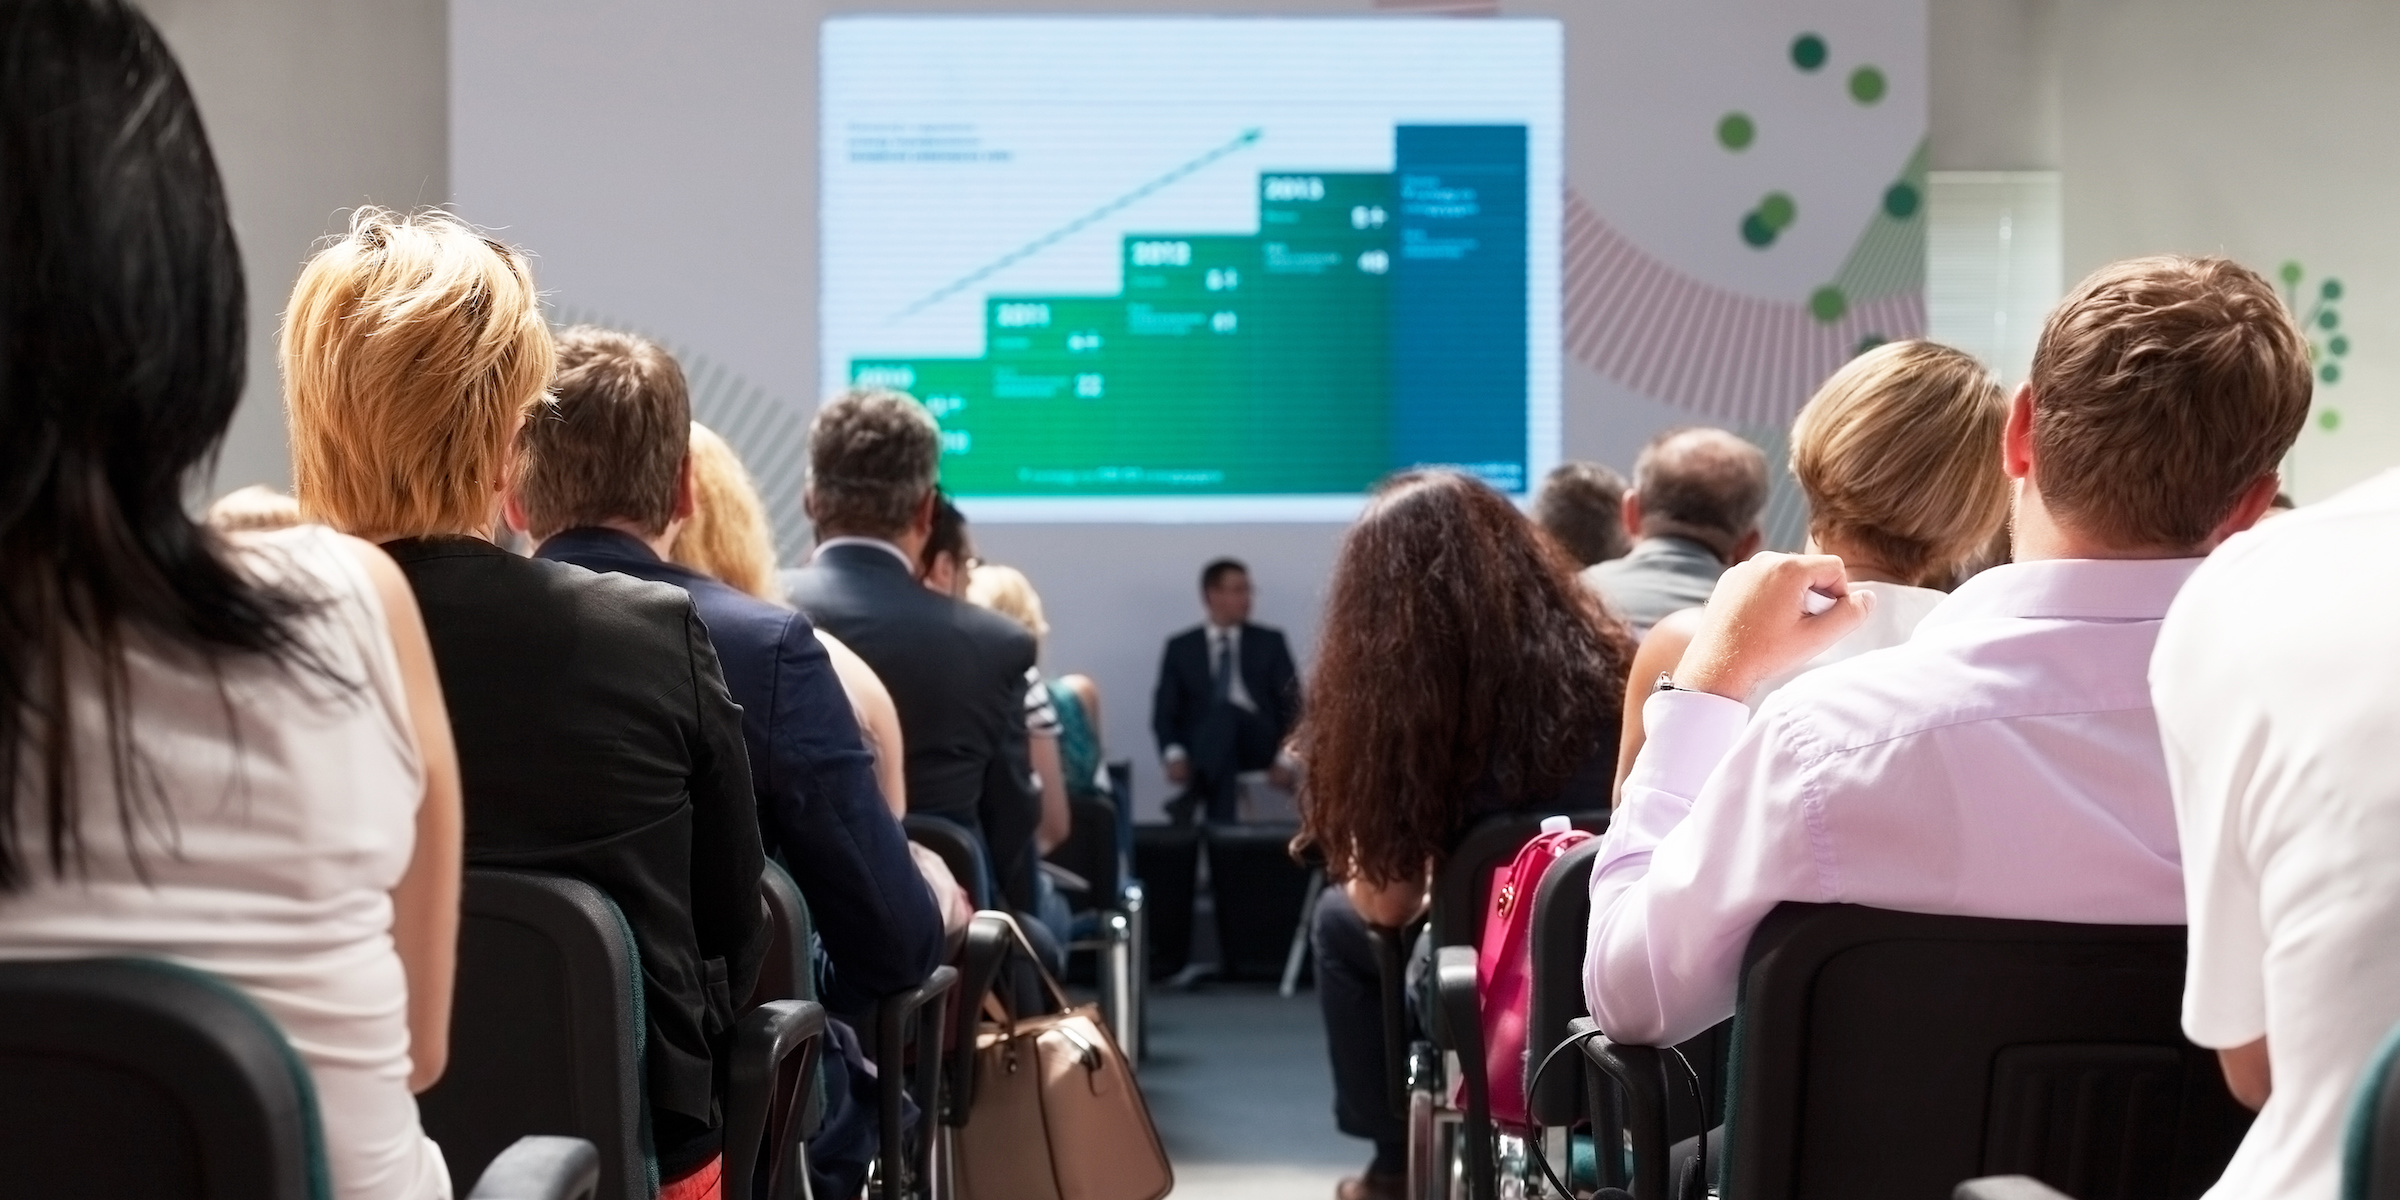 Post-Conference Follow Up: Top Tips for Networking